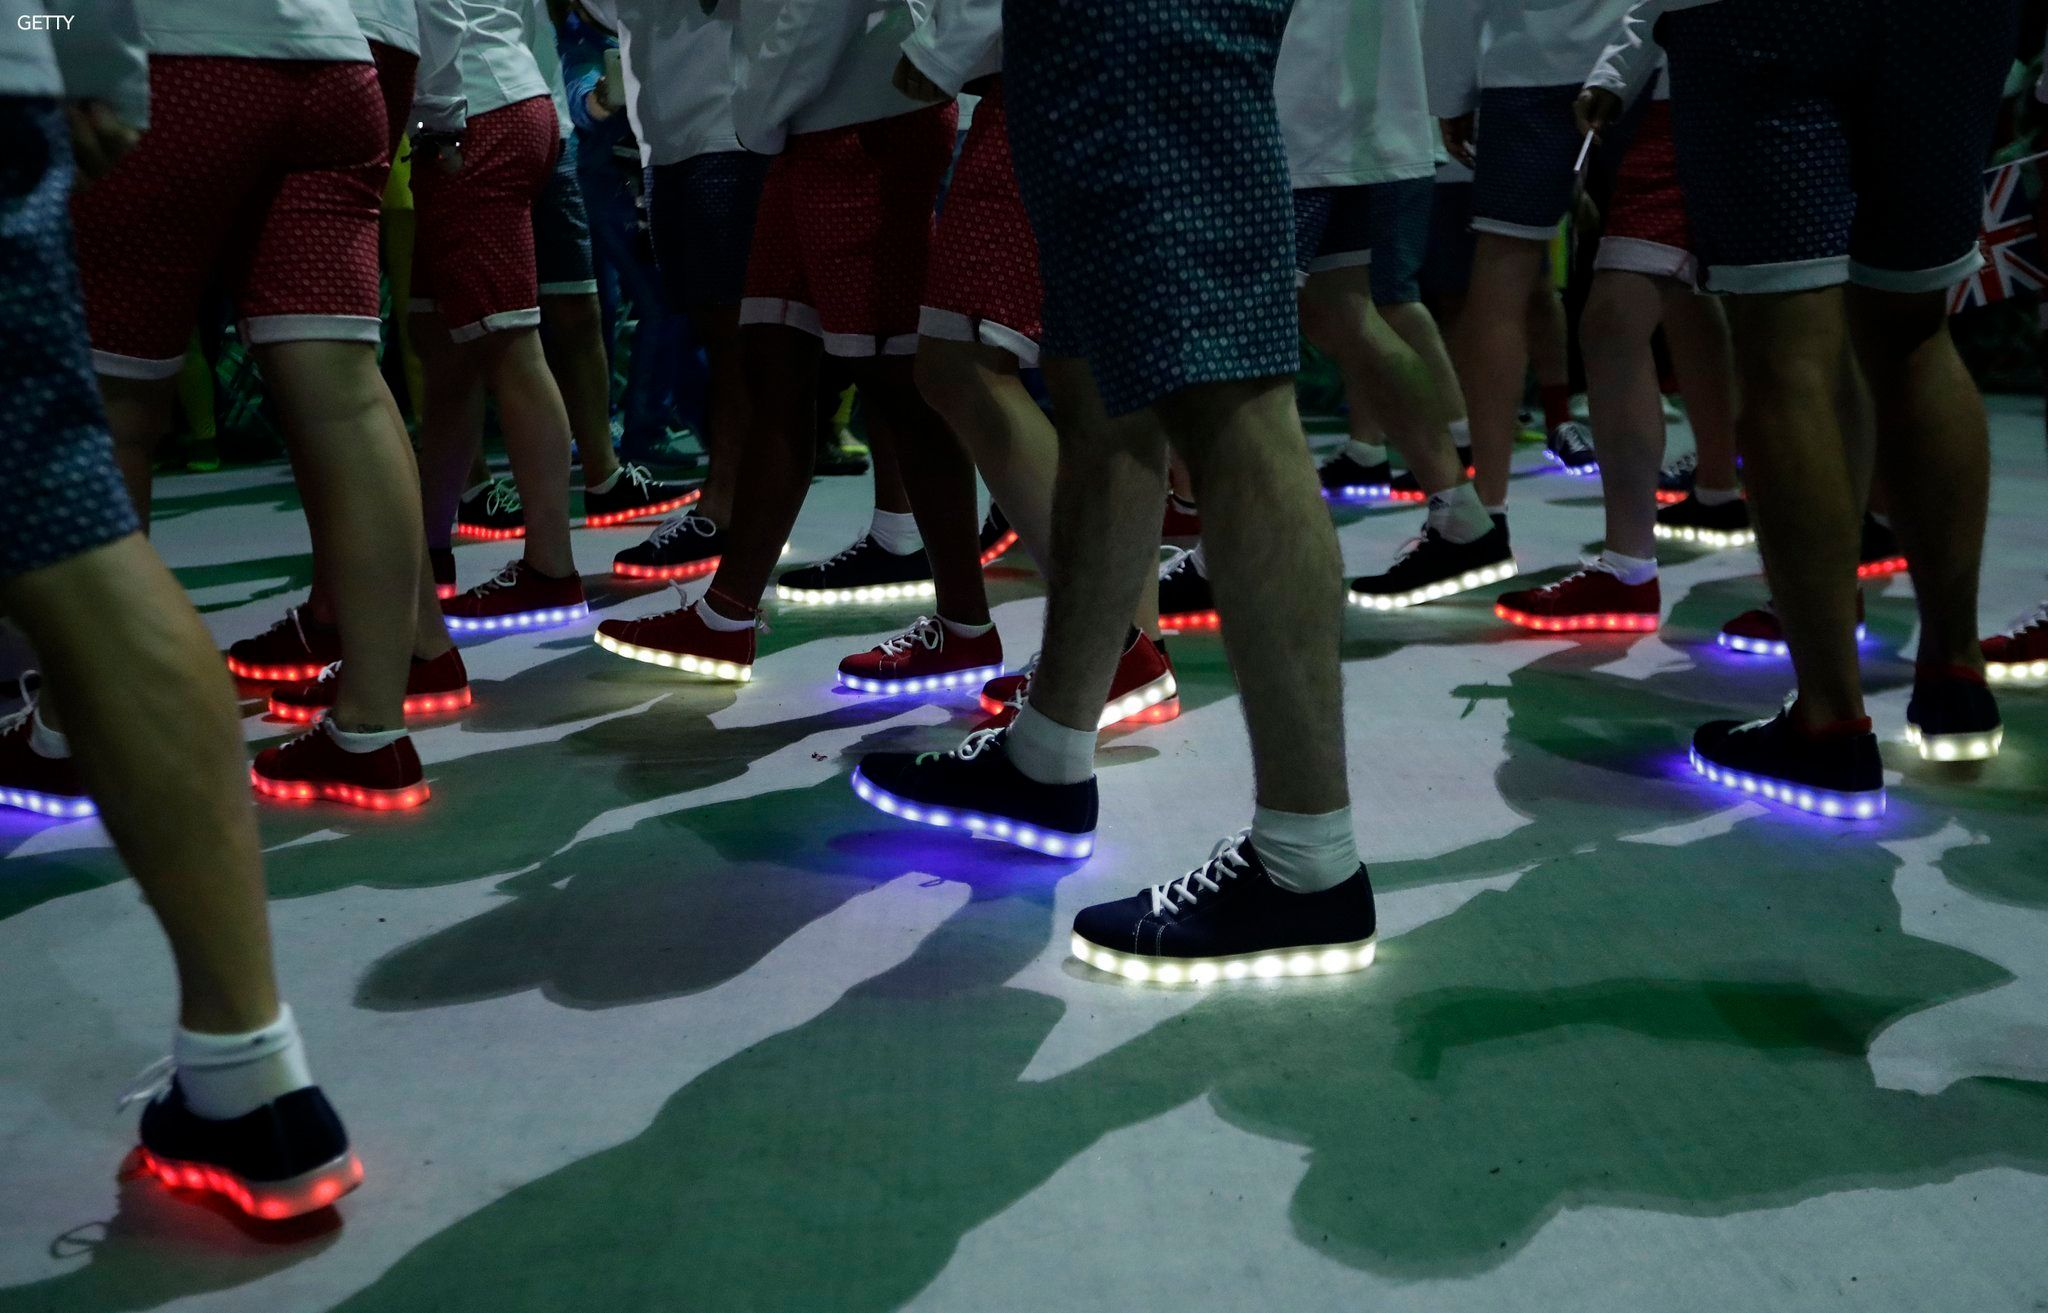 Team GB Won The Whole Olympics With These Light Up